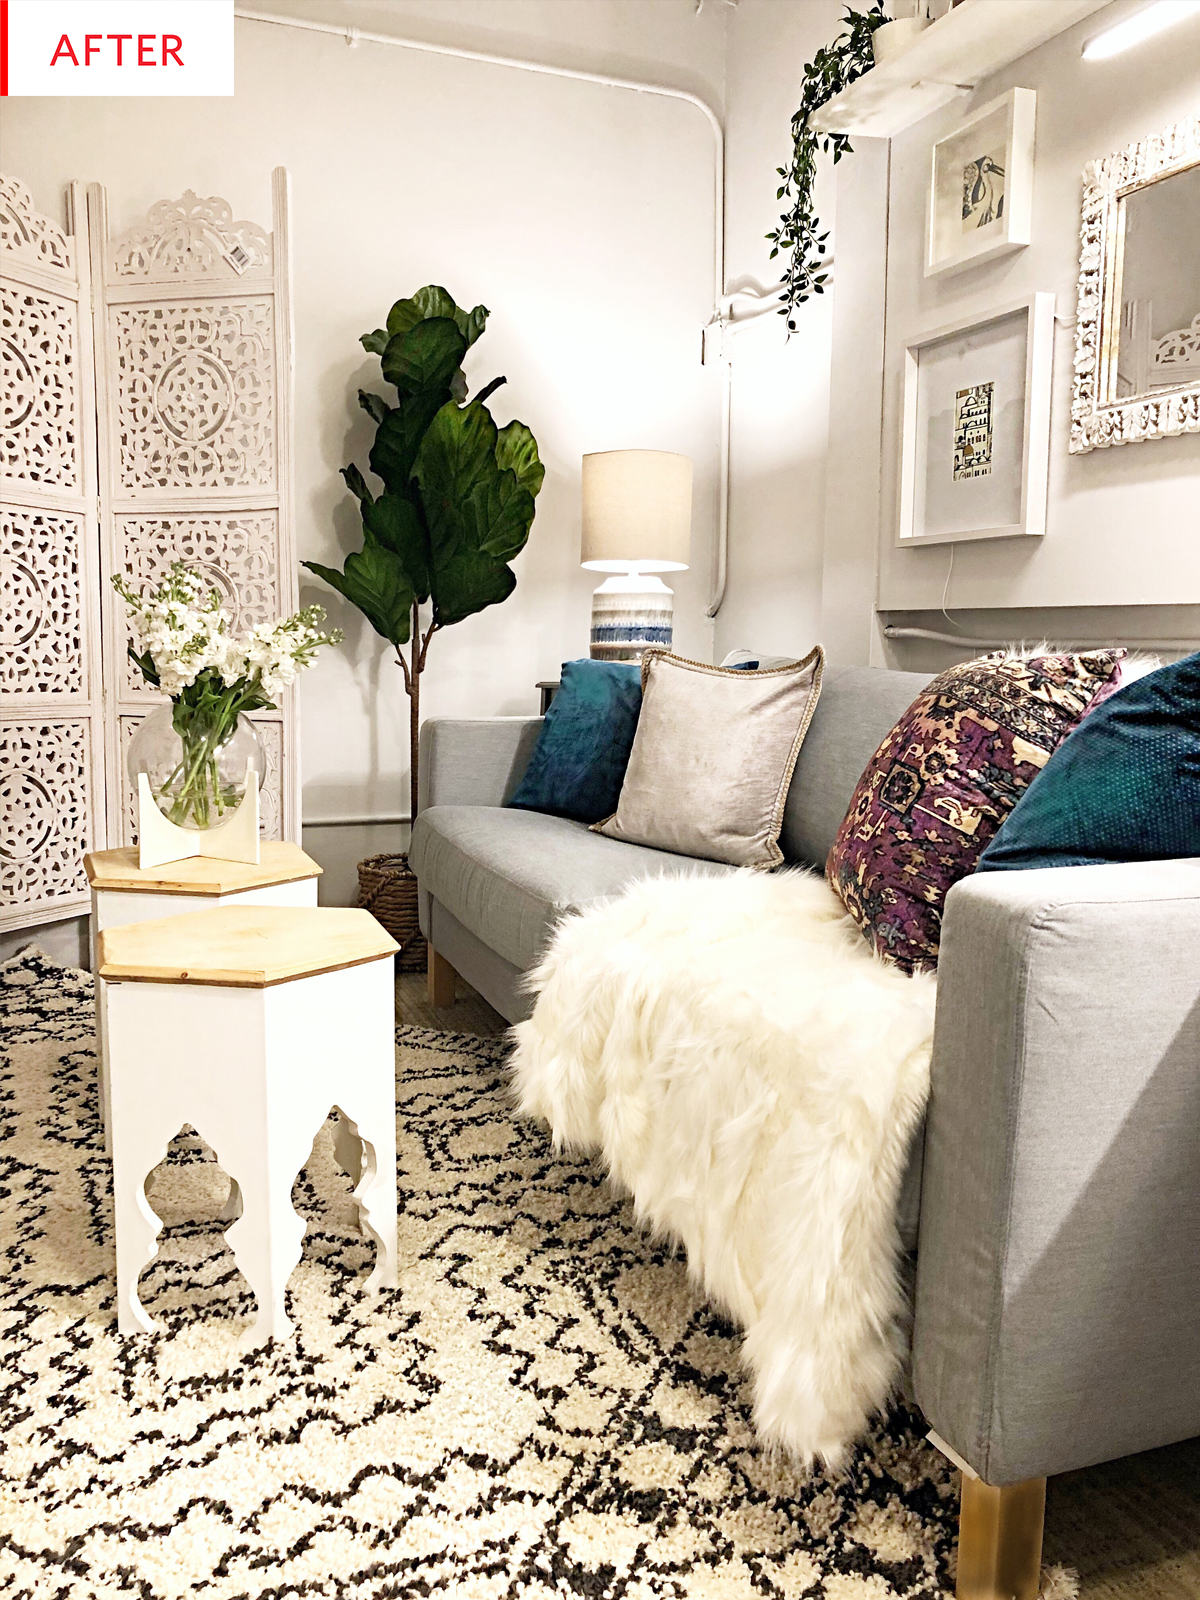 Cher Show S Broadway Dressing Room Transformation Apartment Therapy